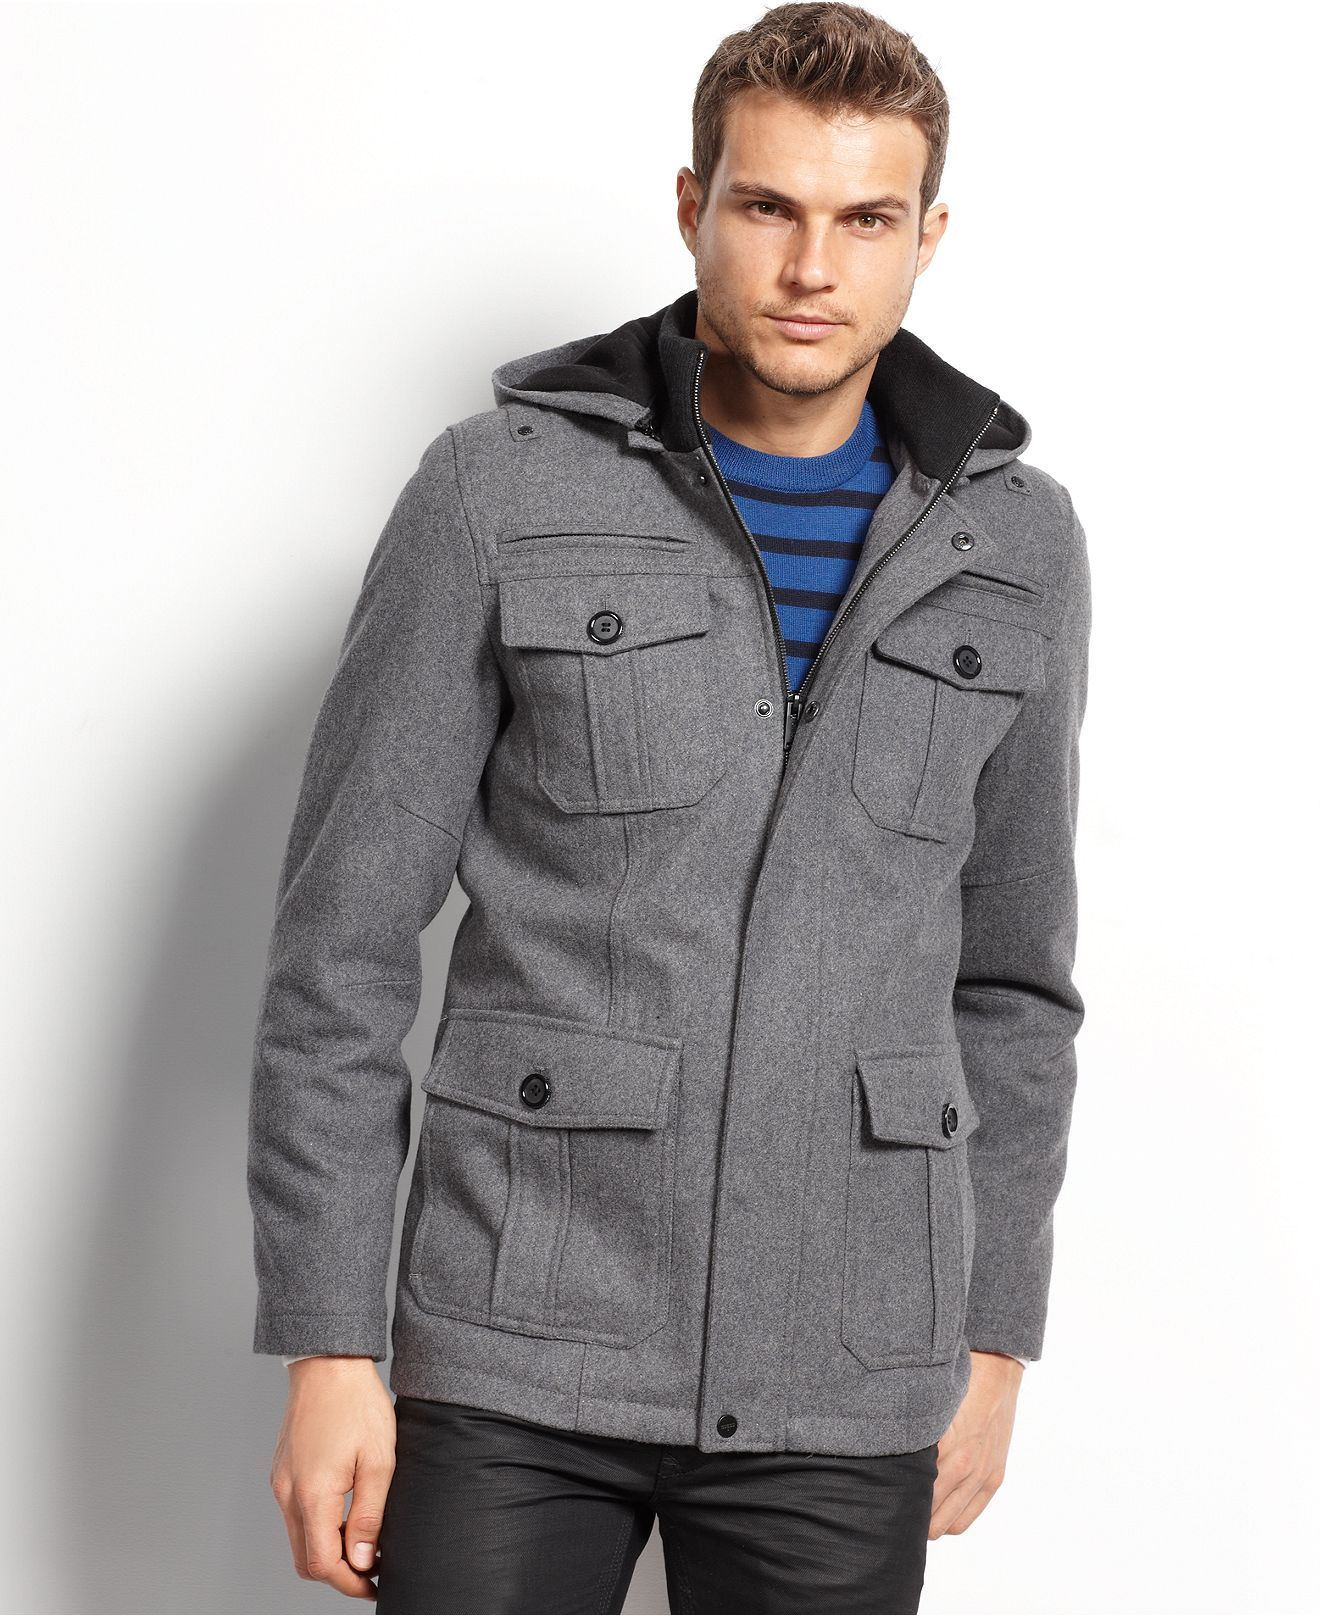 Guess Coats, Military Style Hooded Pea Coat - Mens Coats & Jackets ...